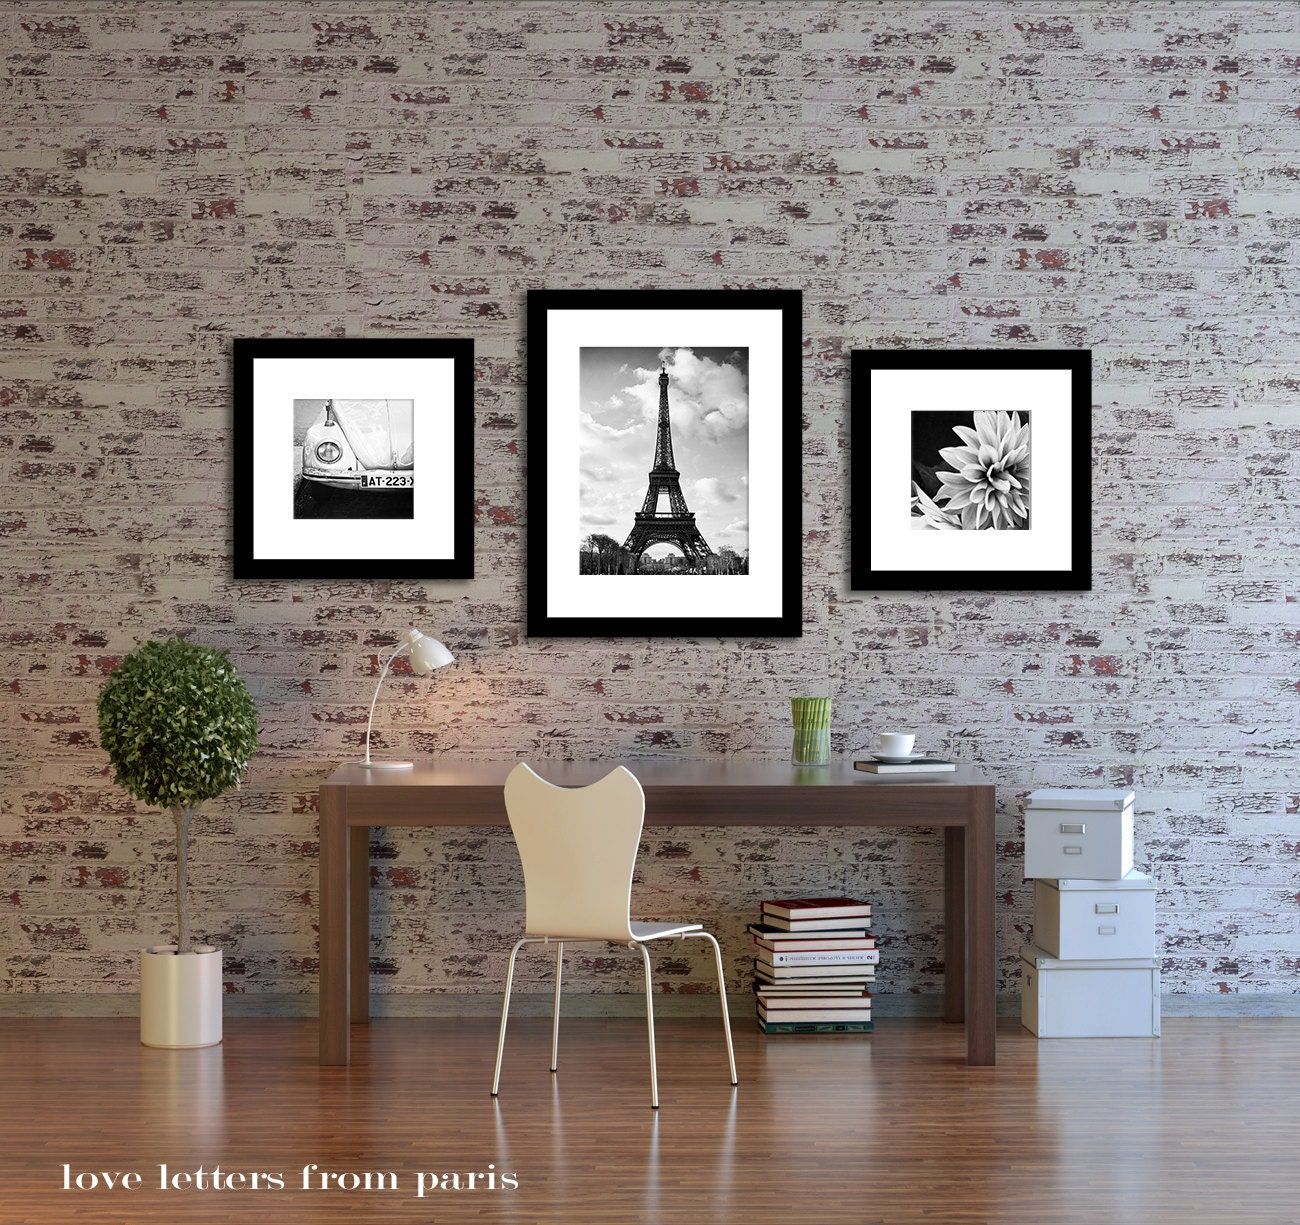 paris photograph home decor paris wall art paris decor On home decorations paris